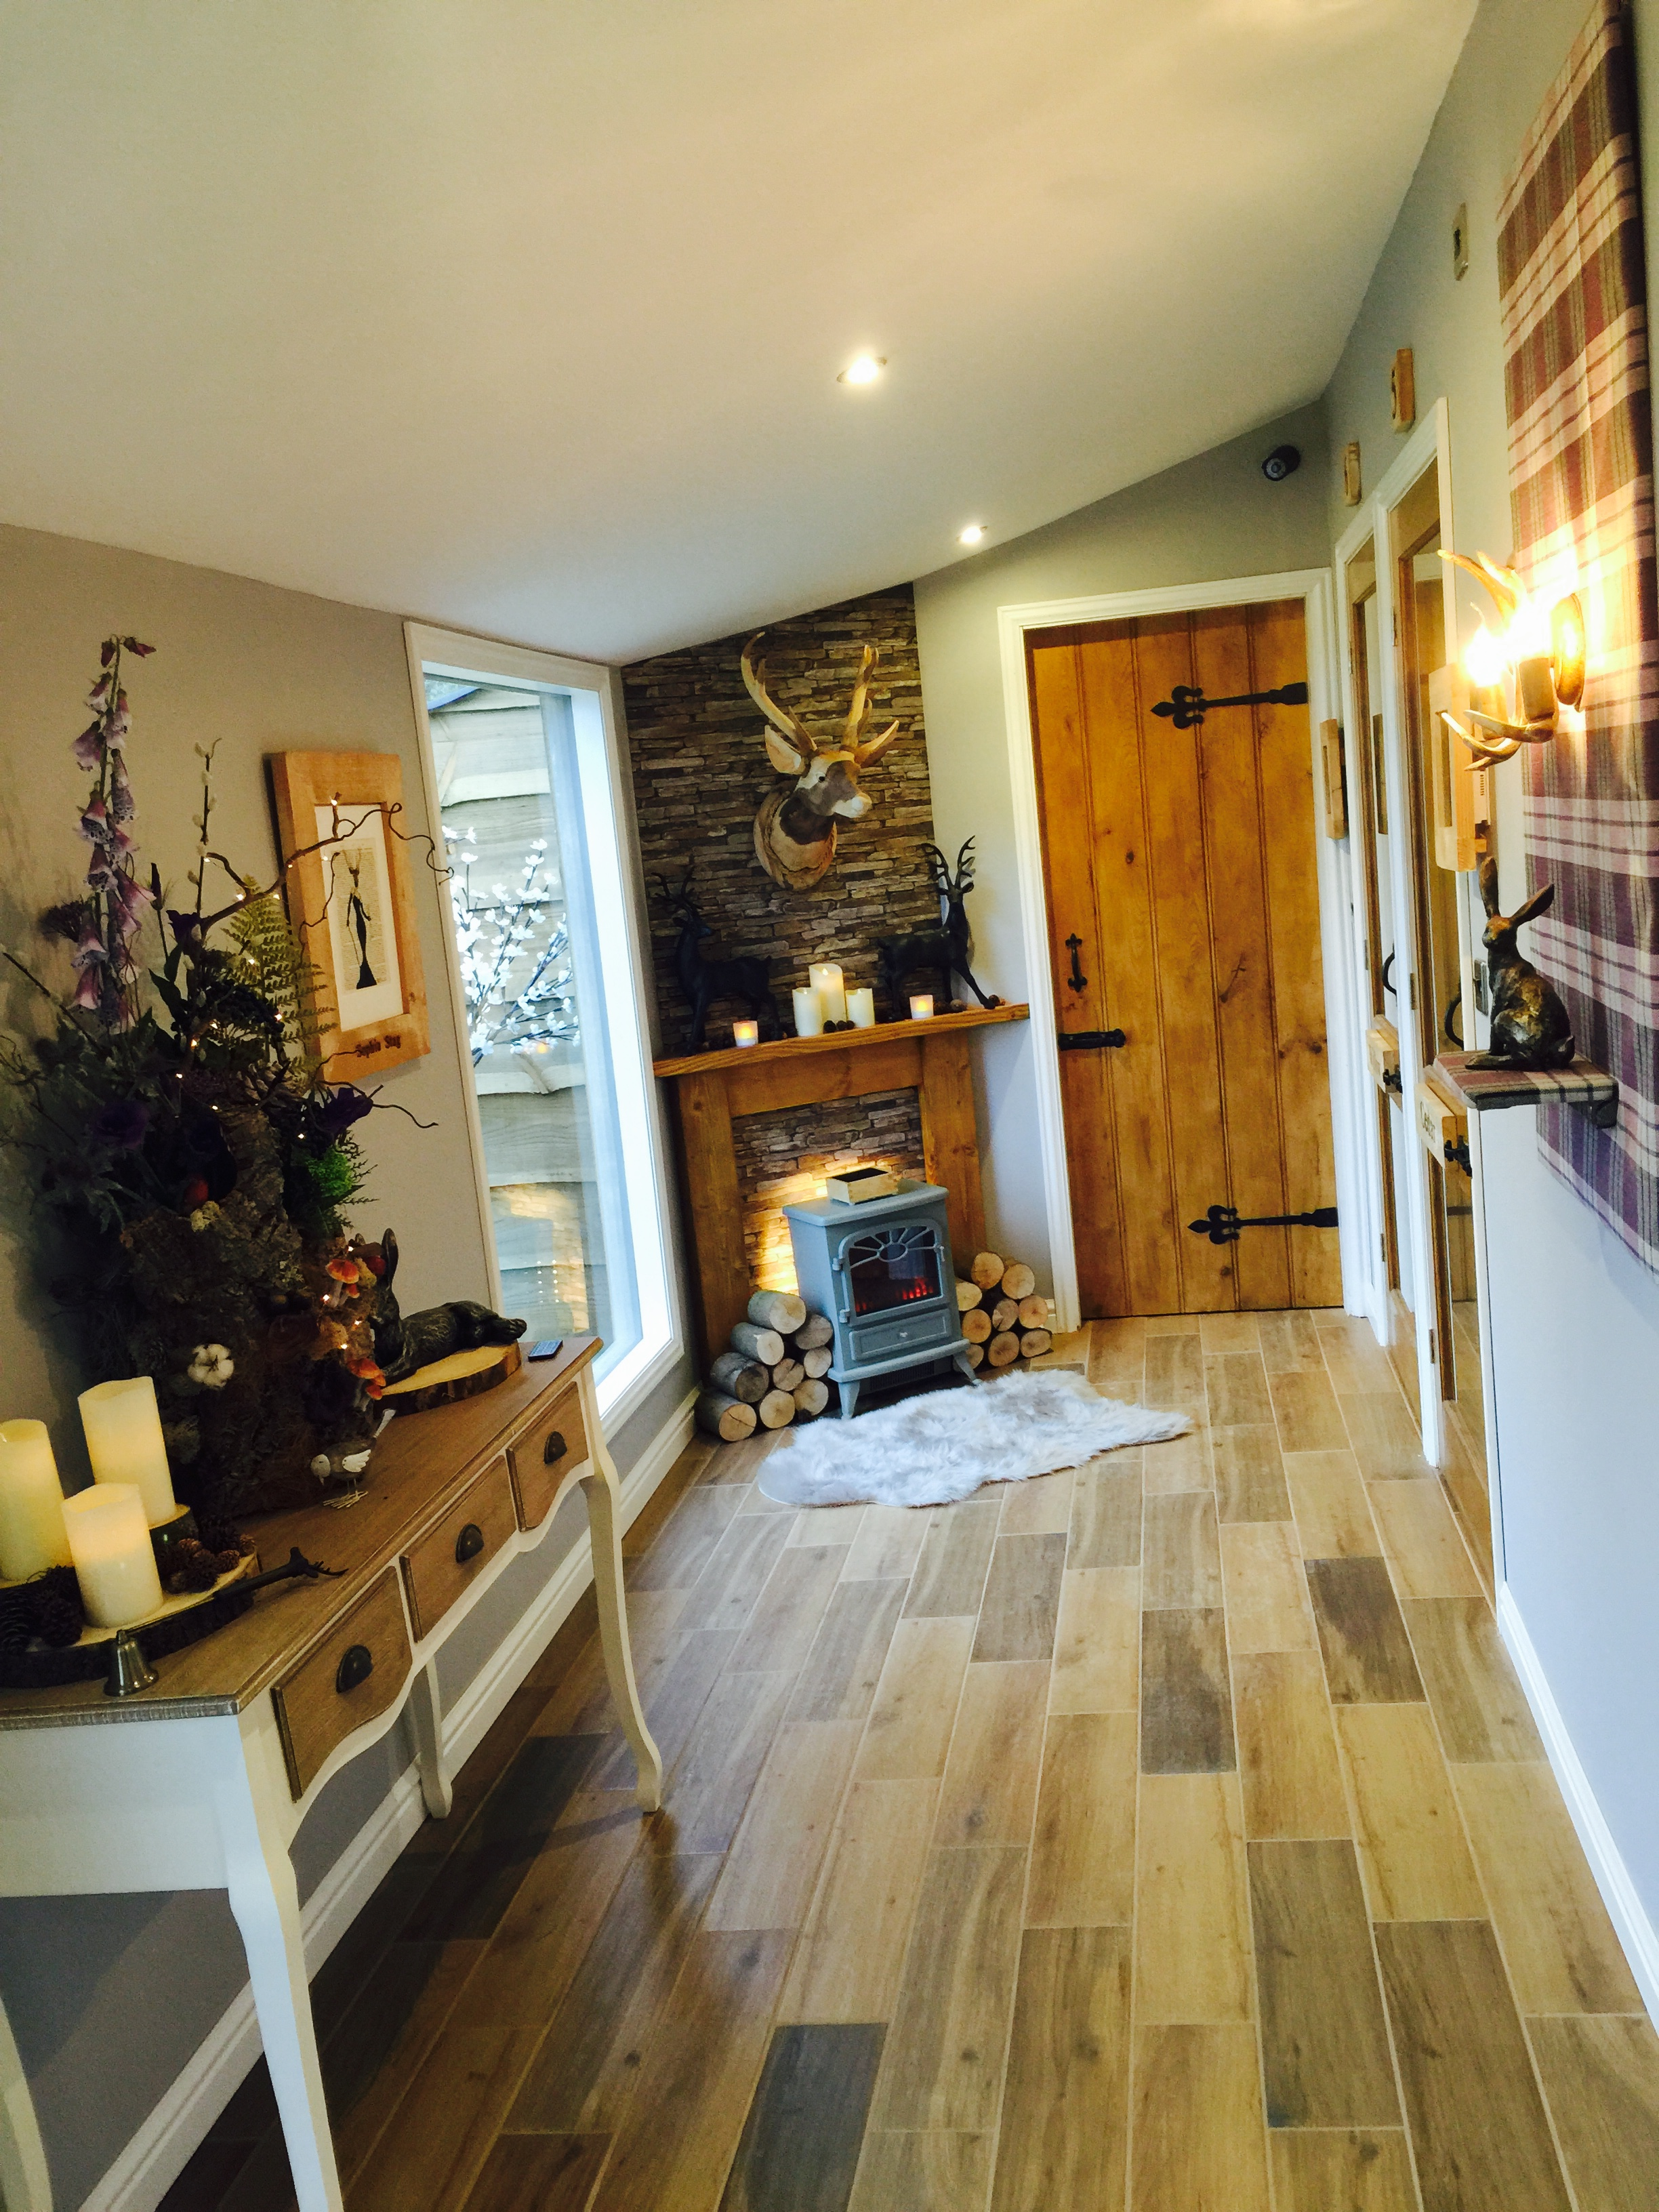 The Lodge The Ings Luxury Cat Hotelthe Ings Luxury Cat Hotel